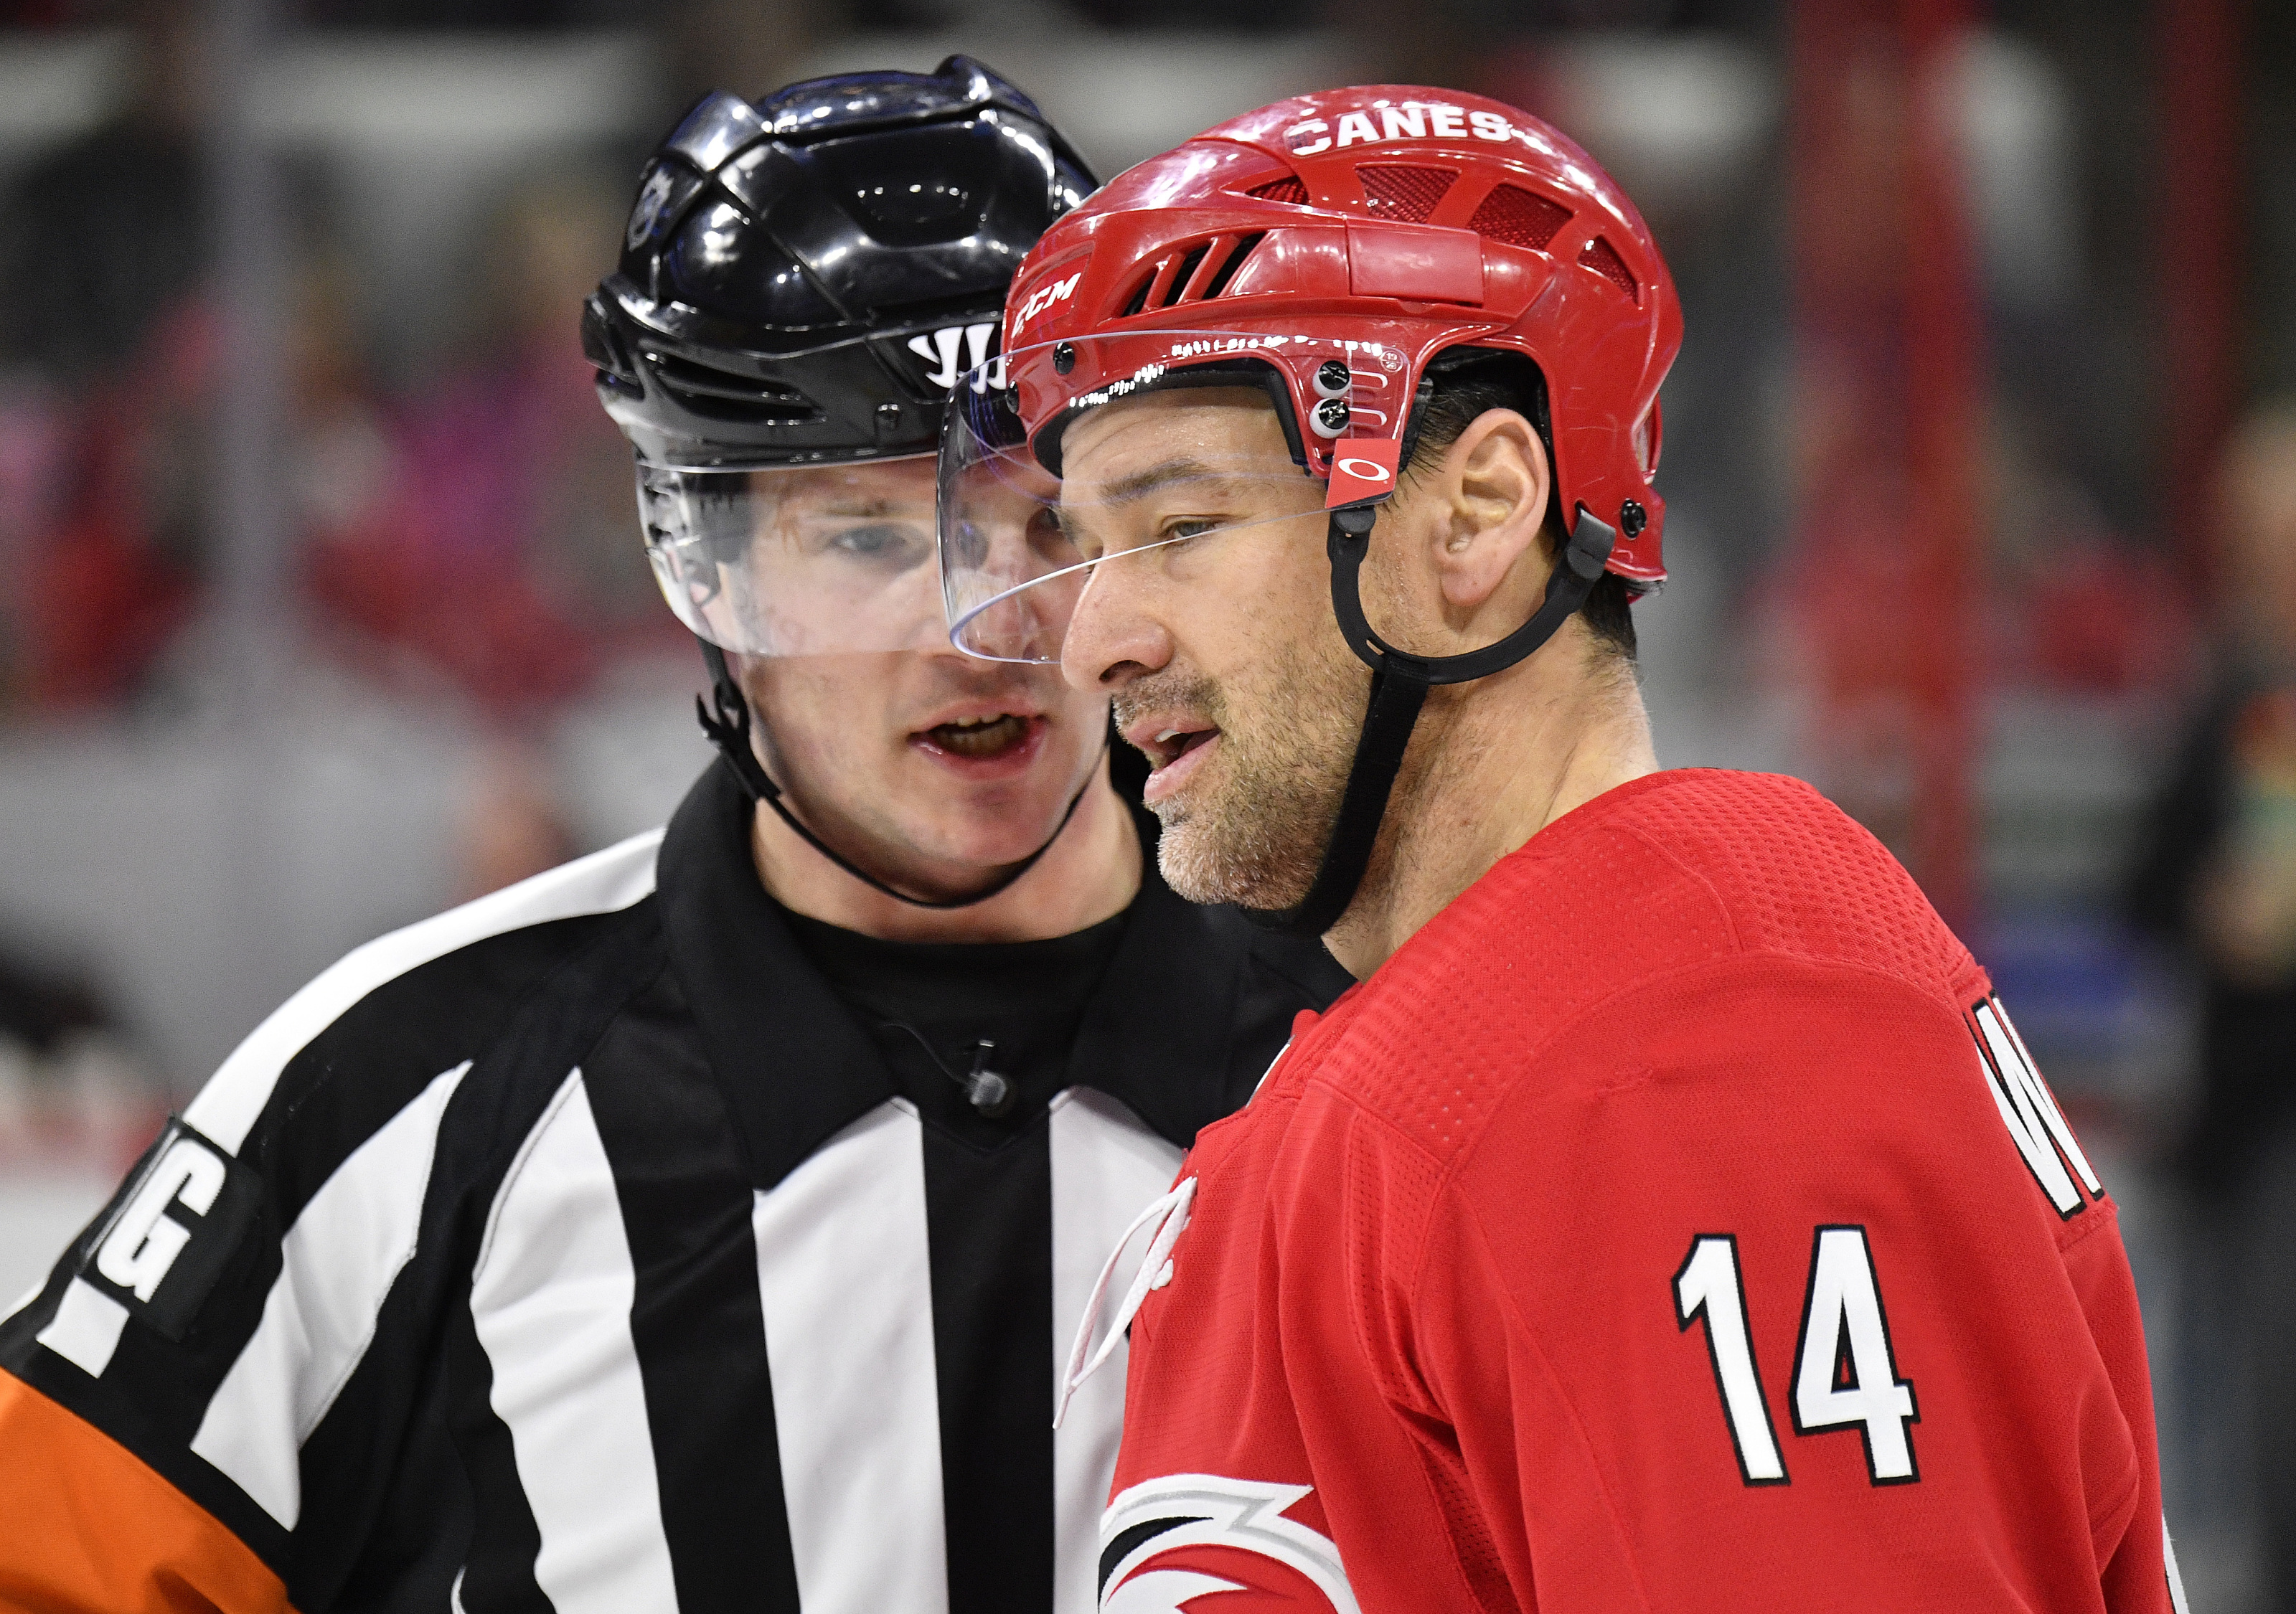 Takeaways from Justin Williams Final Canes Corner